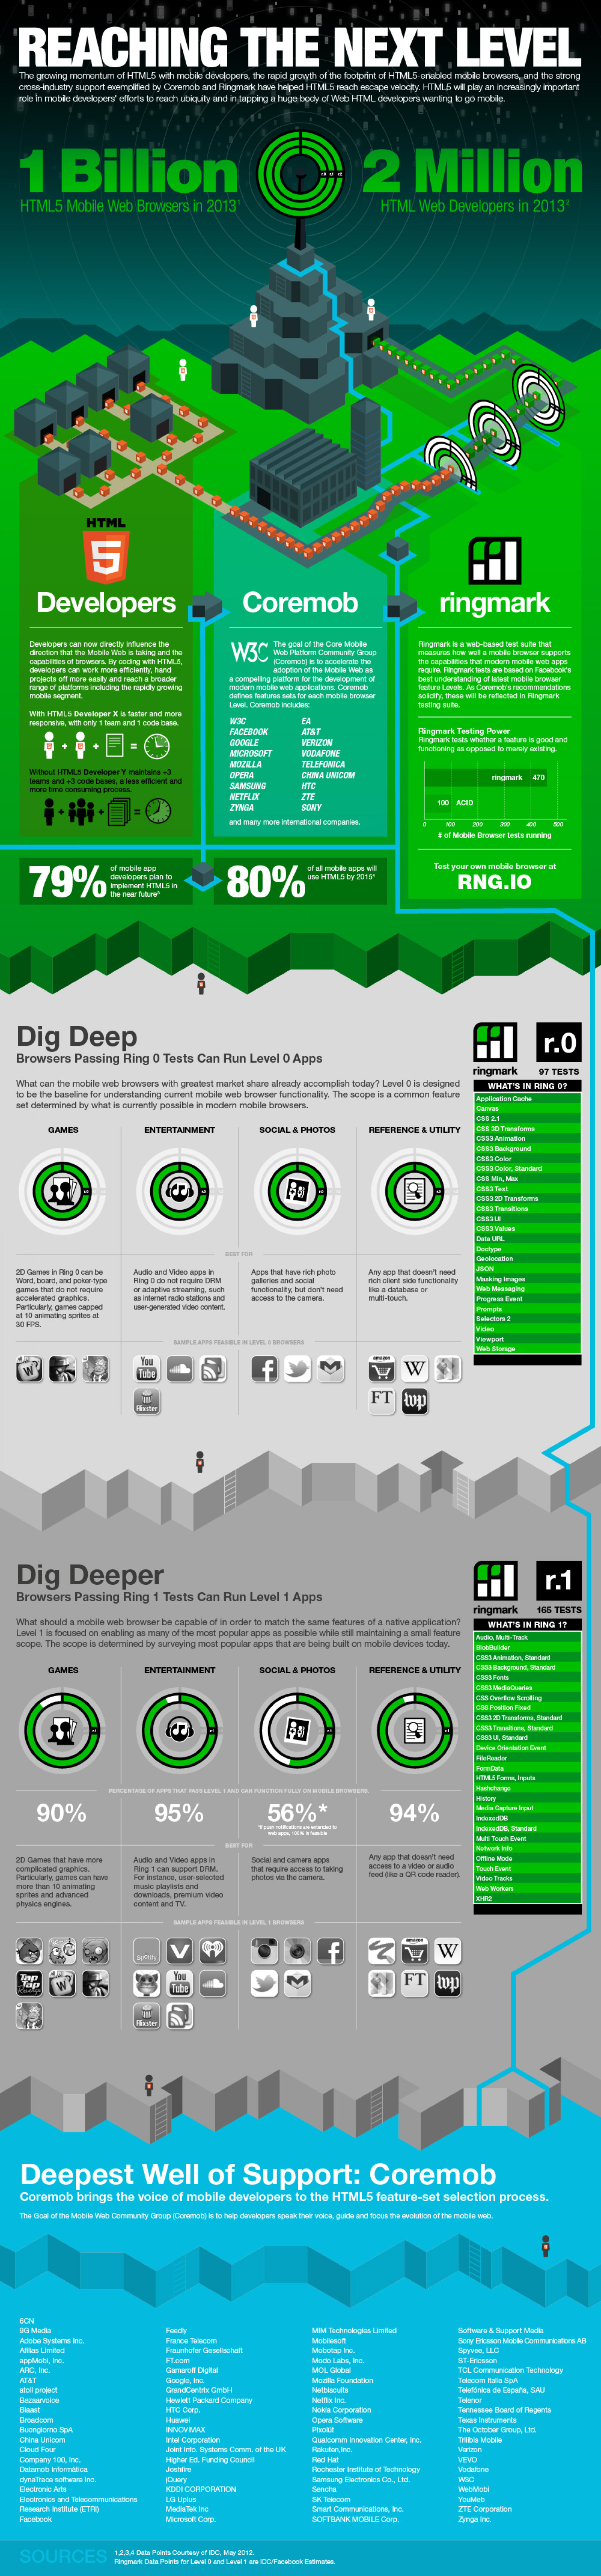 IDC Next Level of Mobile Web Infographic